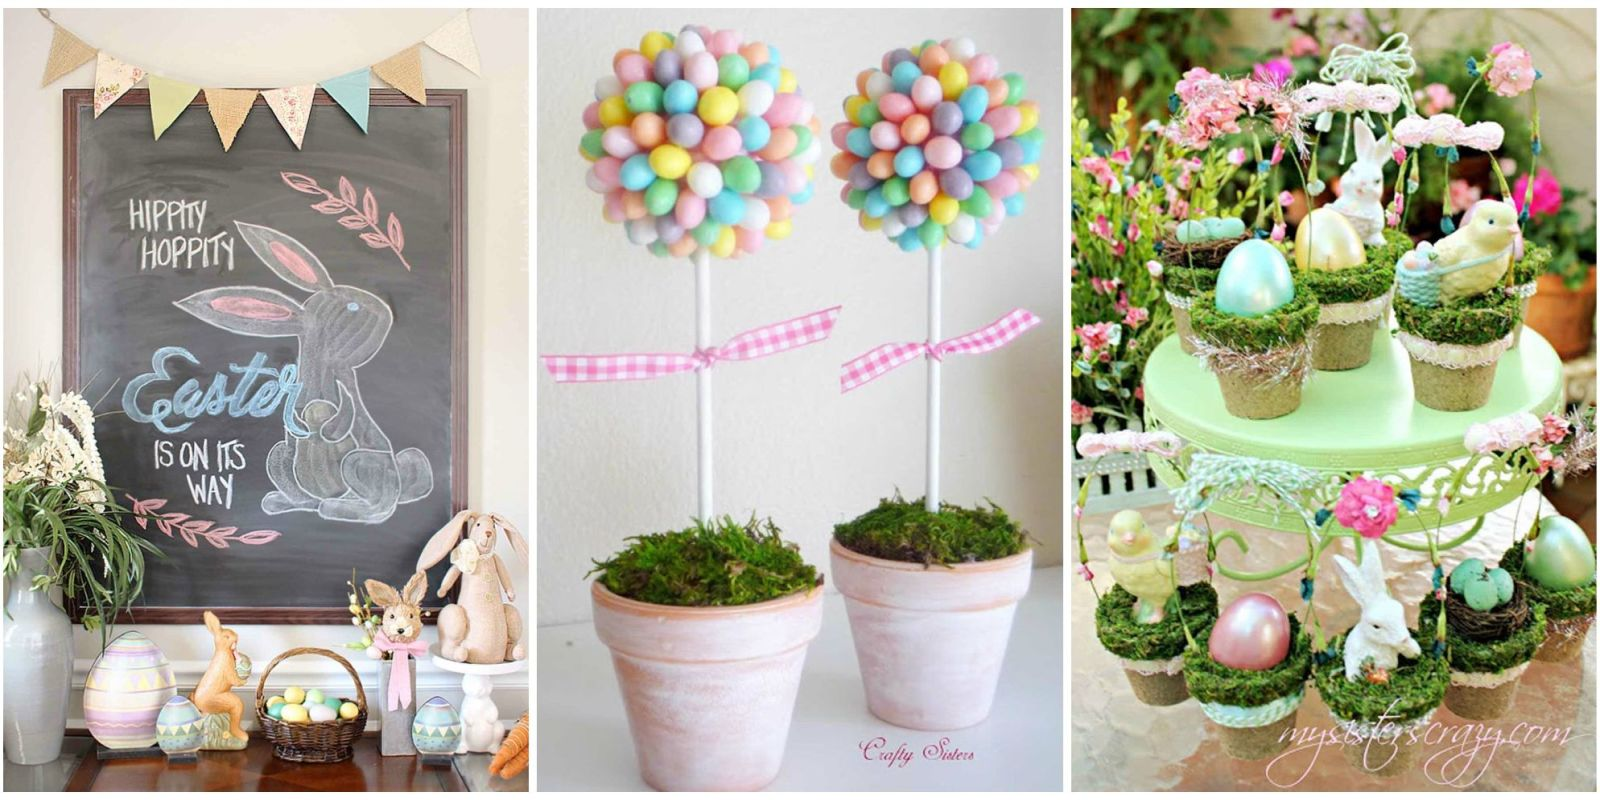 20 diy easter decorations to make homemade easter for Diy easter decorations for the home